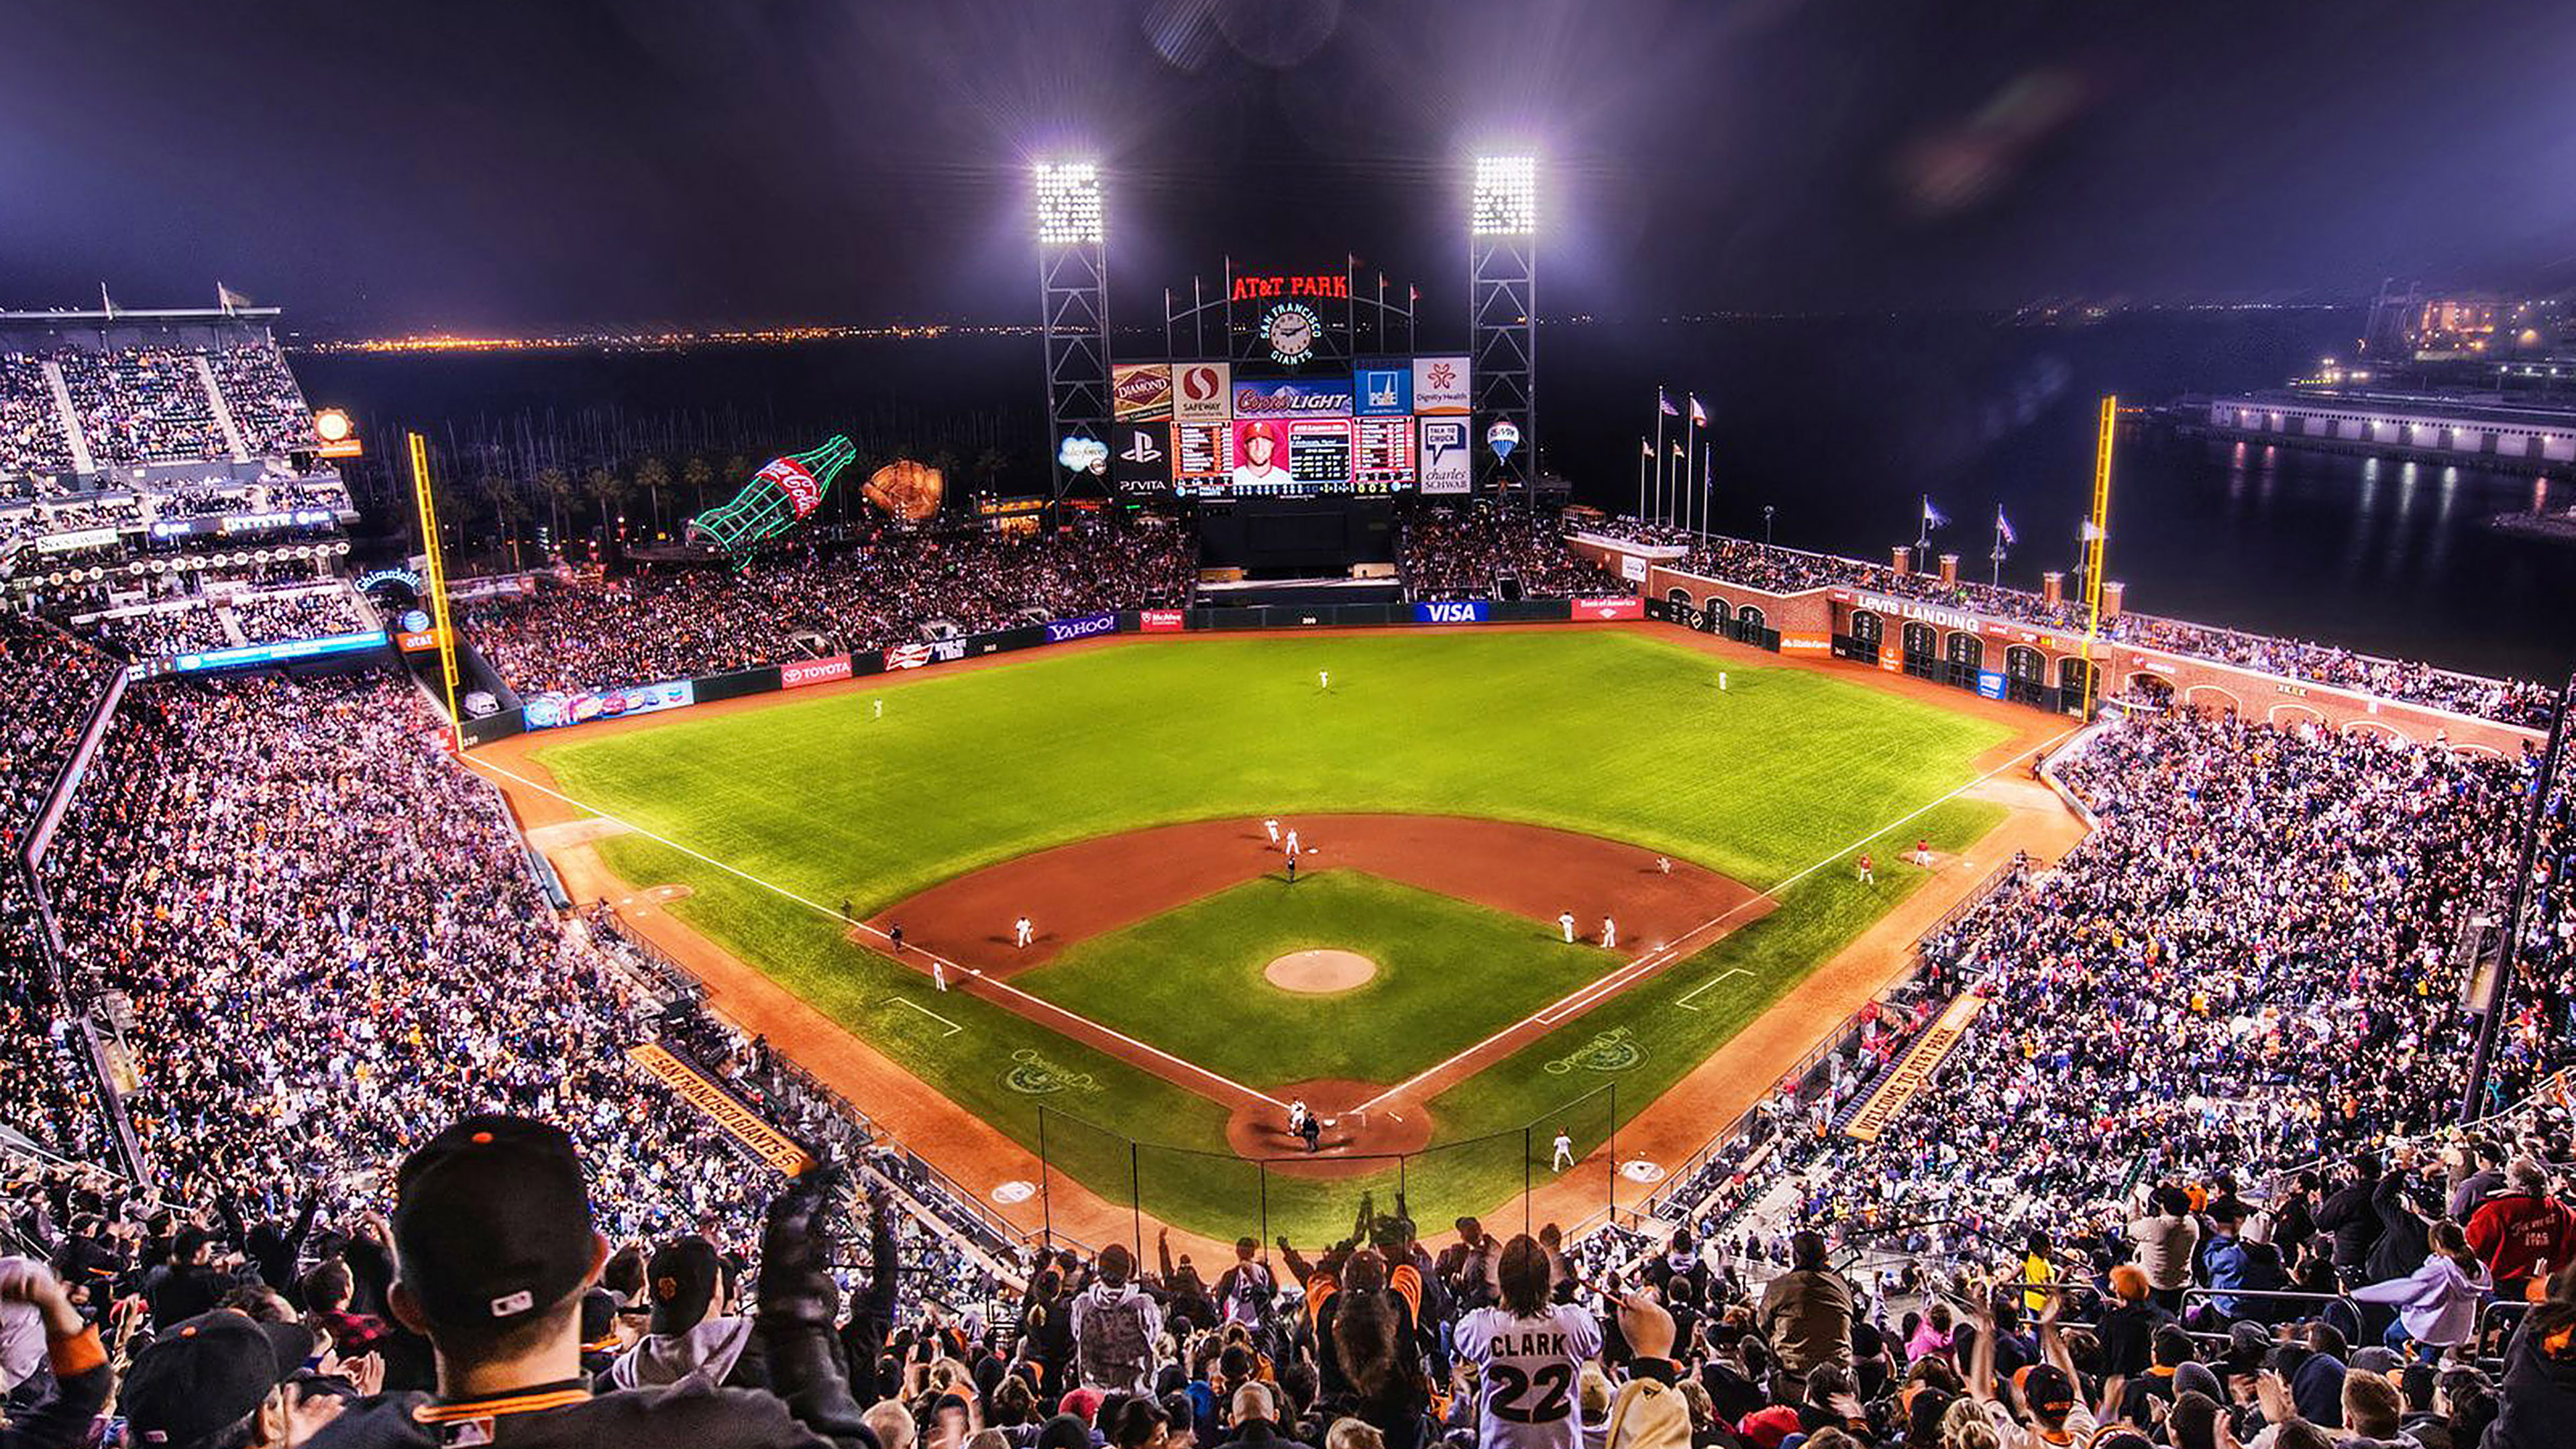 Fall Wallpaper For Iphone 7 Plus Aa57 Baseball Stadium Sports Art Papers Co